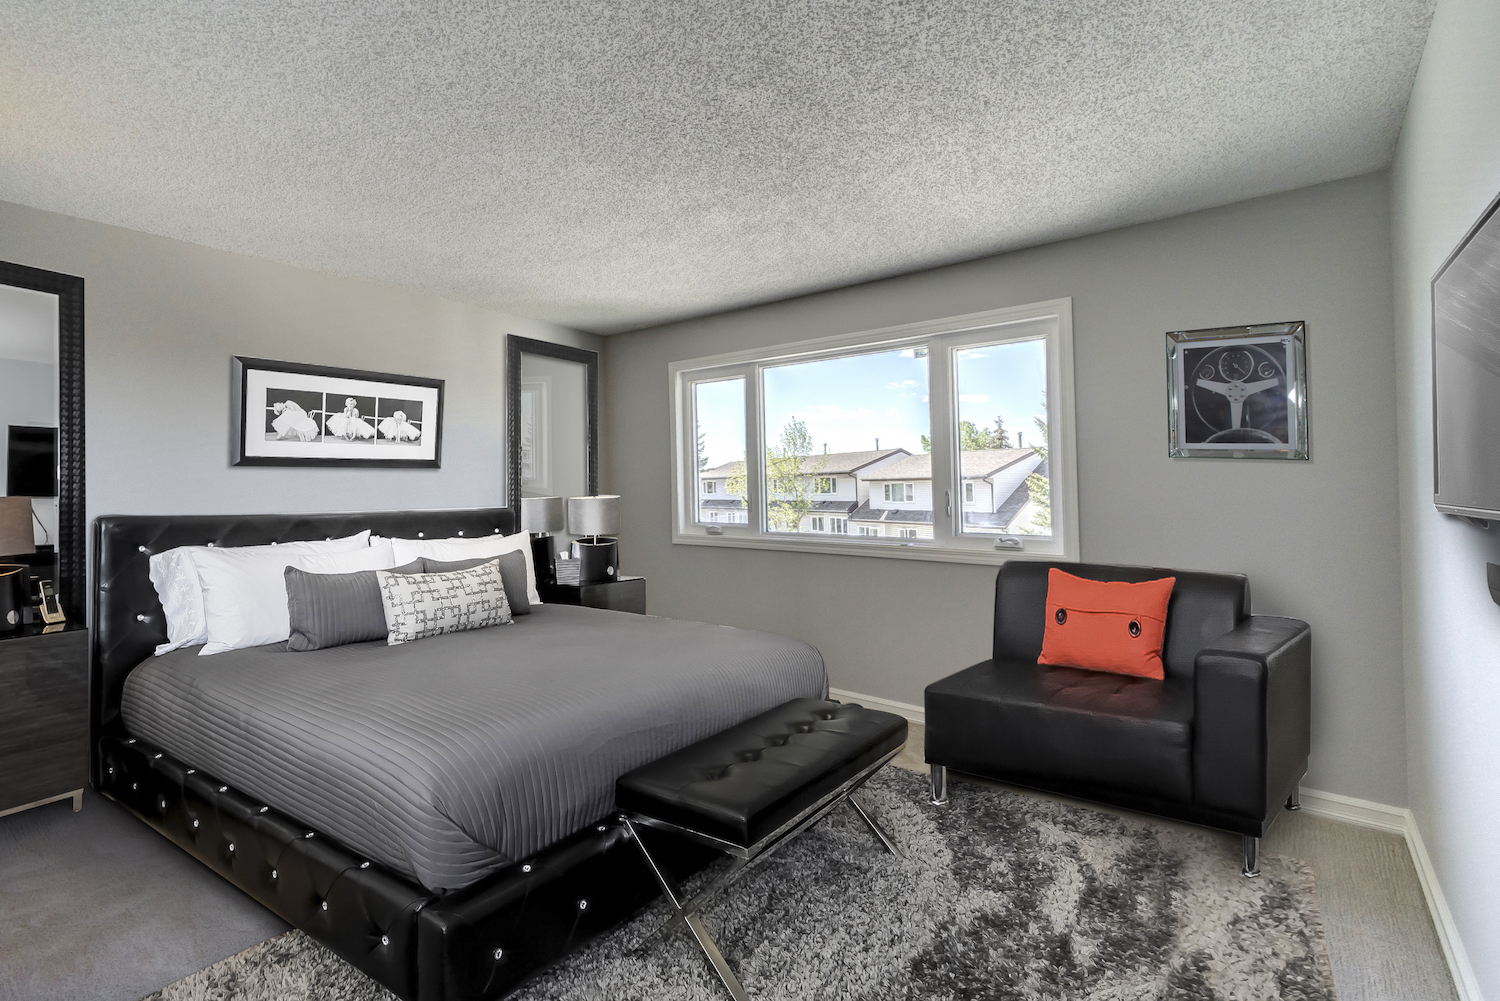 virtual home staging archives calgary real estate photographer video tours sona visual. Black Bedroom Furniture Sets. Home Design Ideas